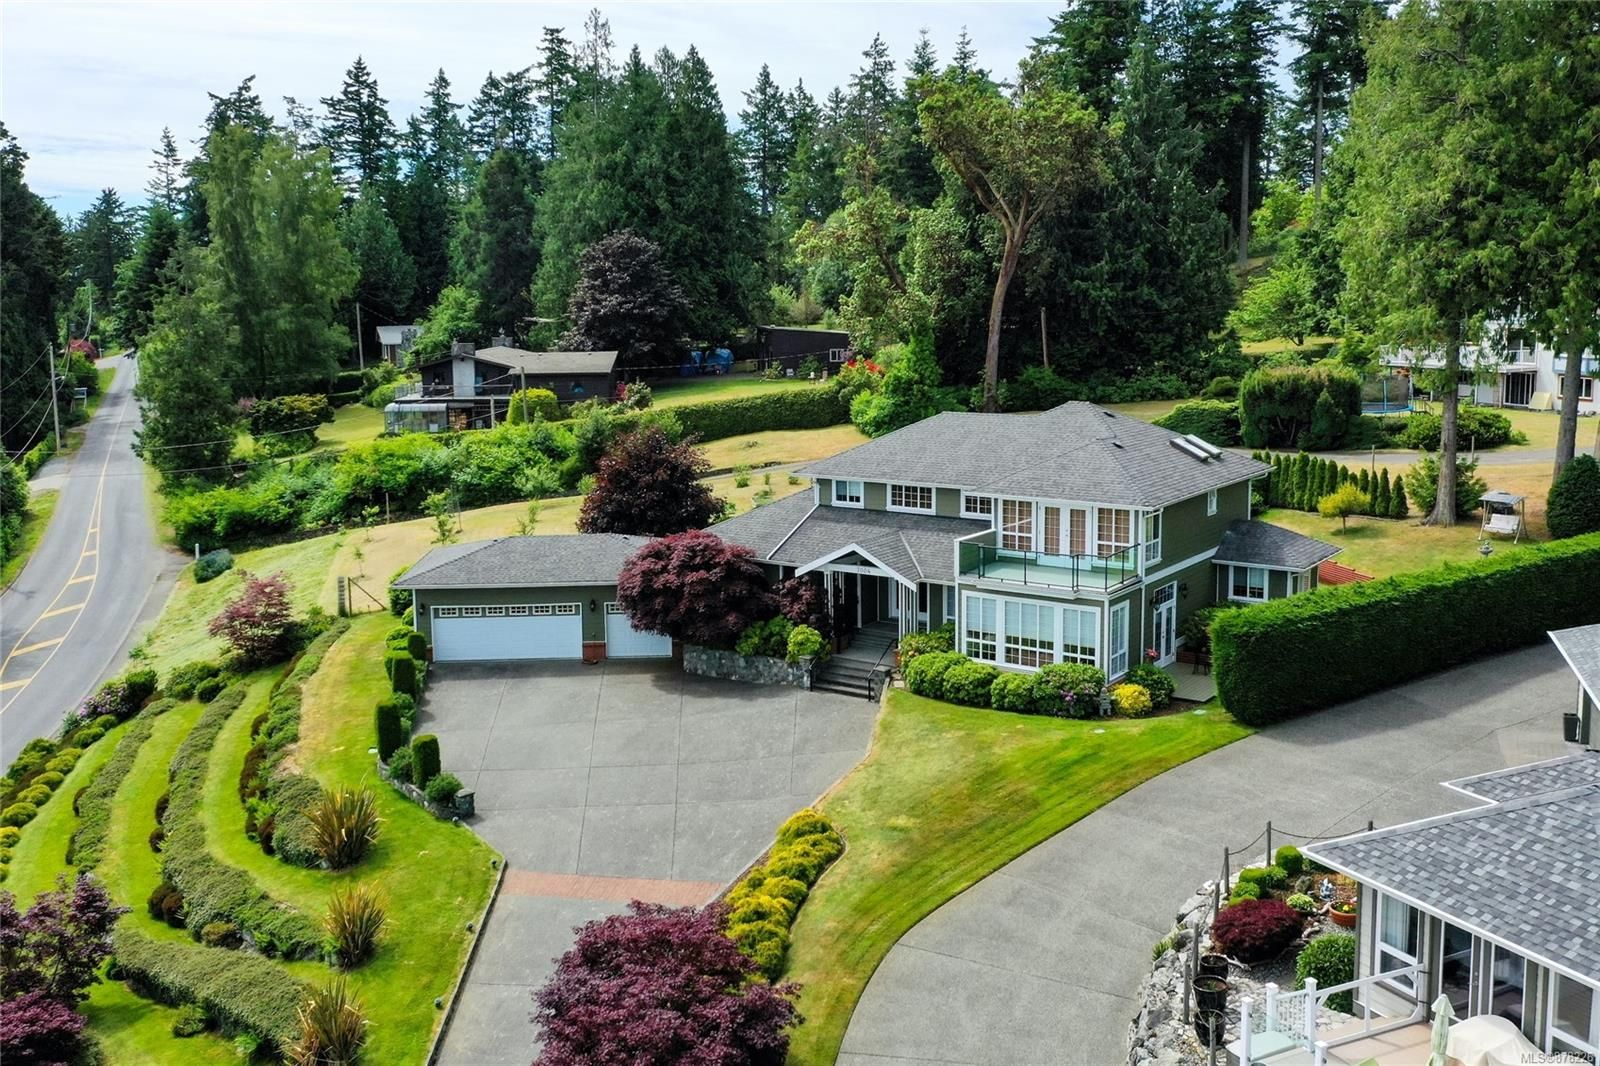 Main Photo: 7004 Island View Pl in : CS Island View House for sale (Central Saanich)  : MLS®# 878226